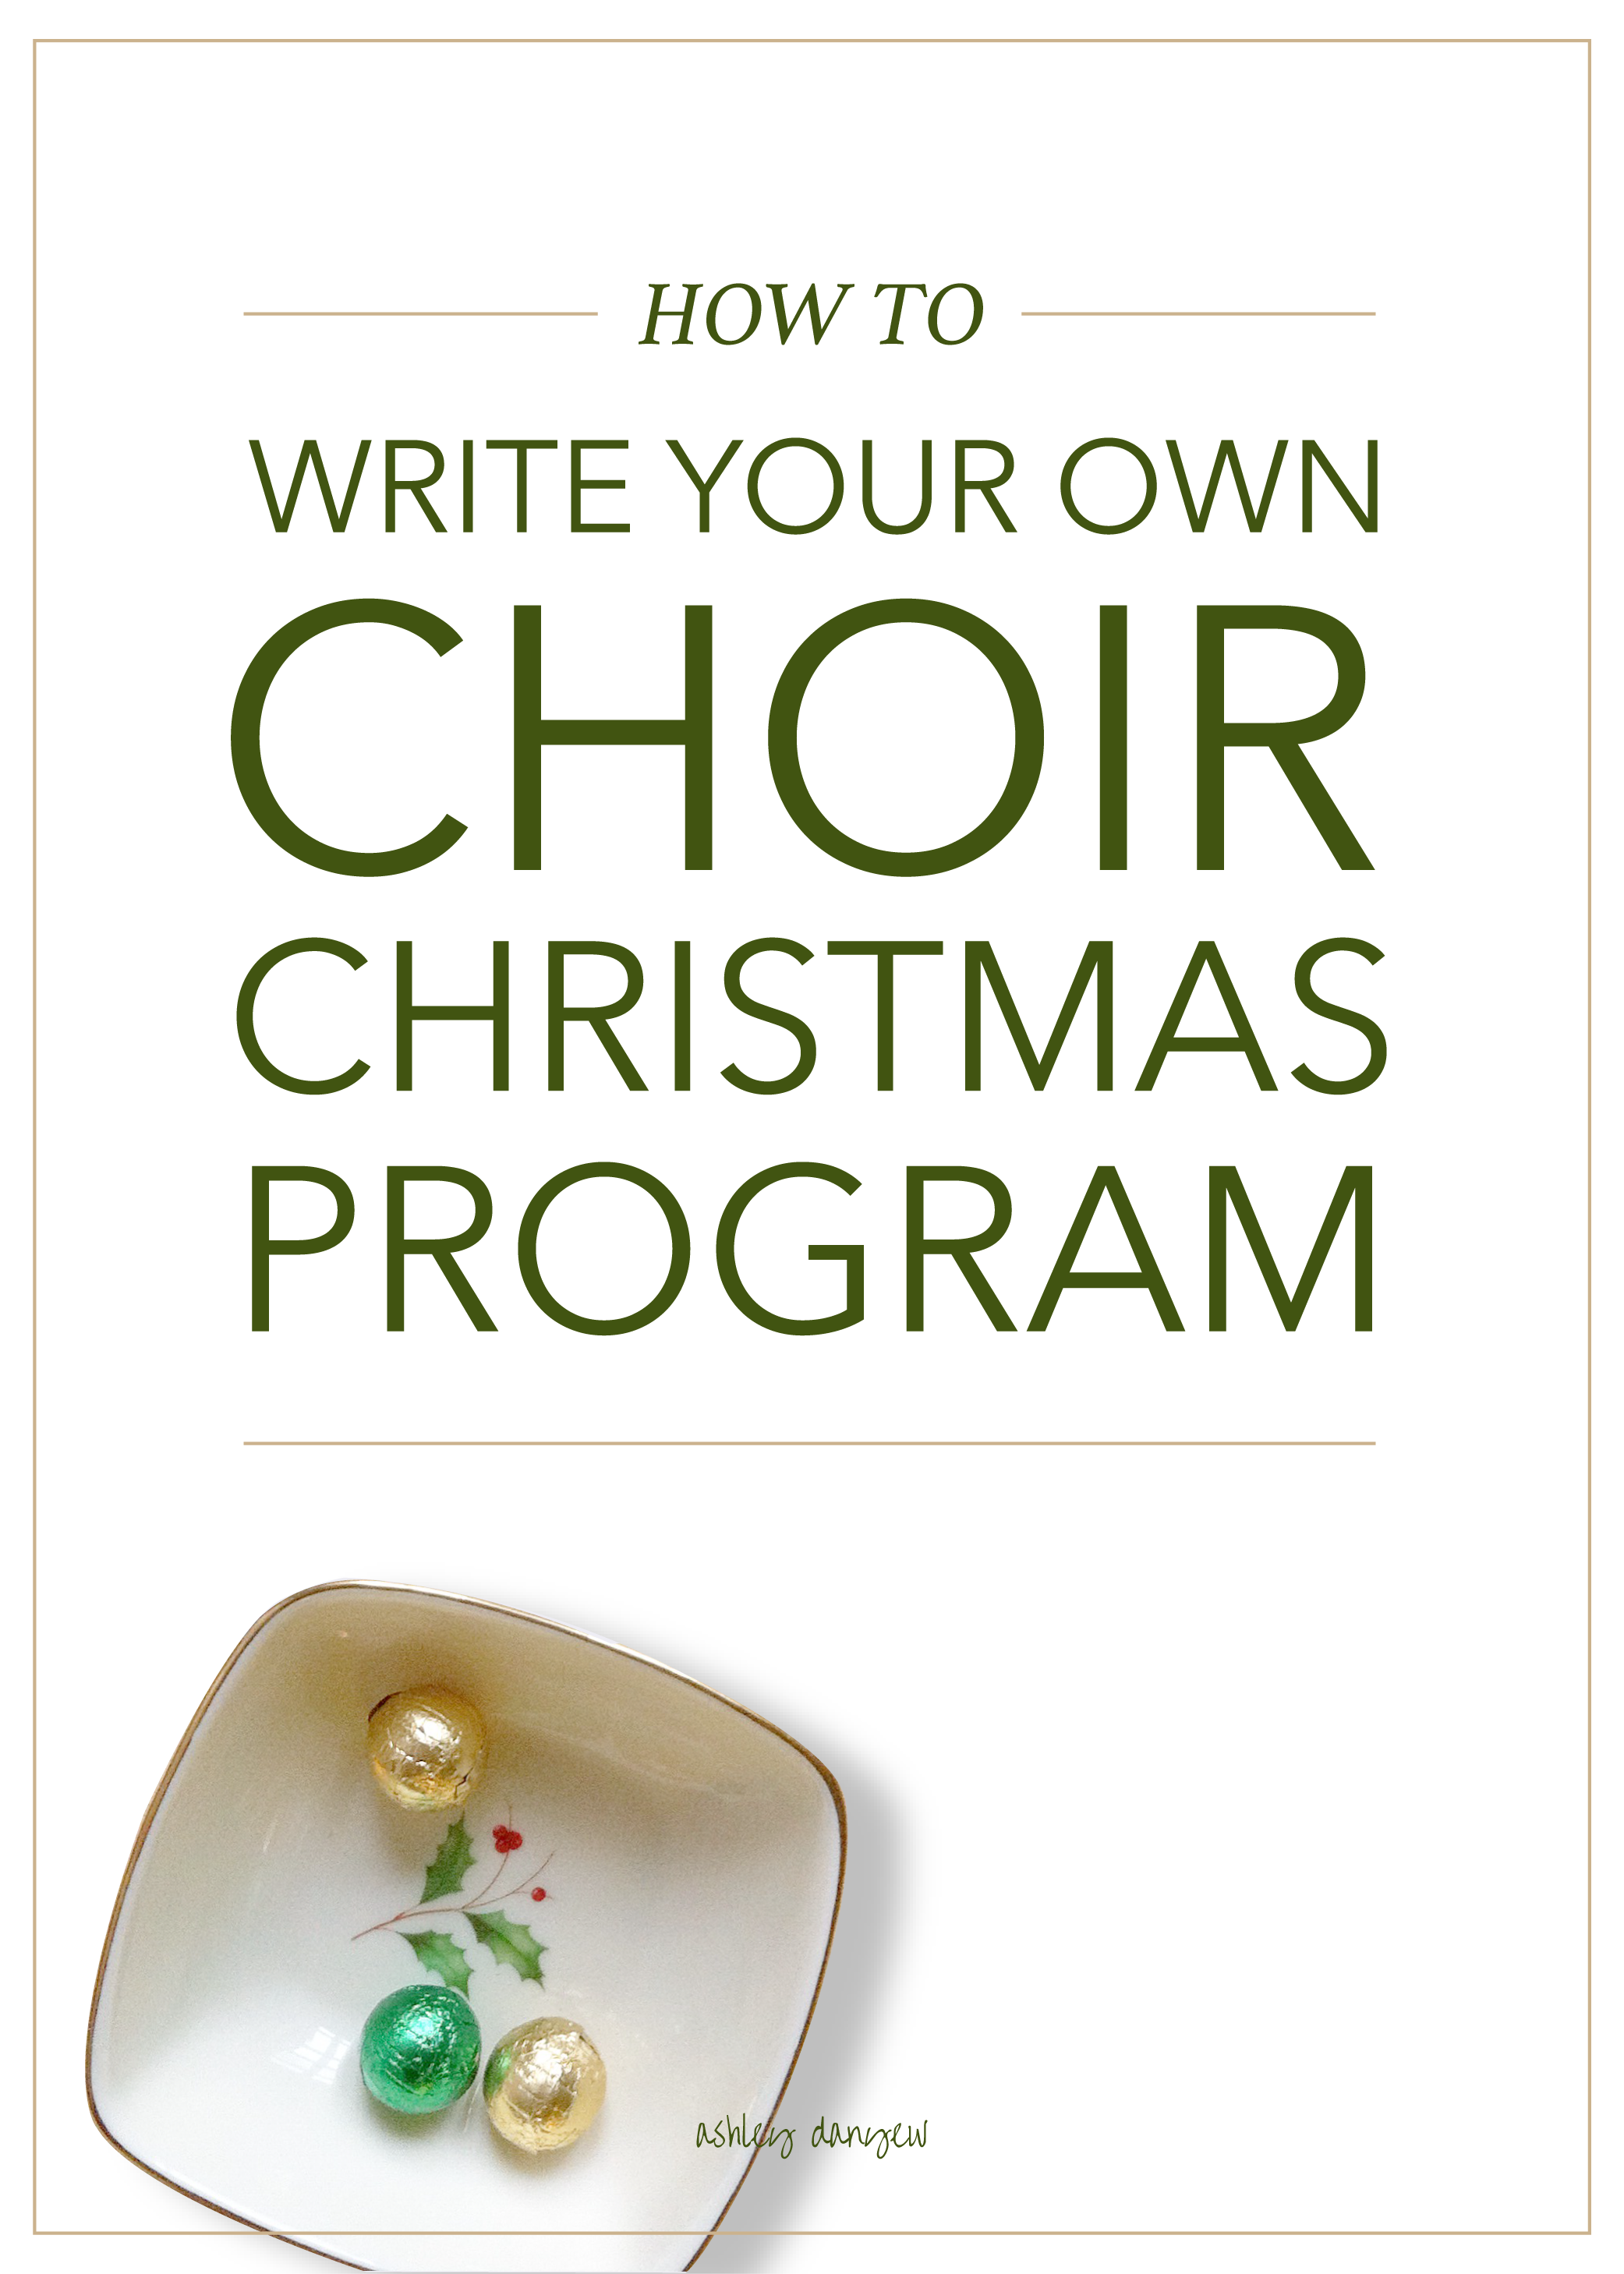 Copy of How to Write Your Own Choir Christmas Program